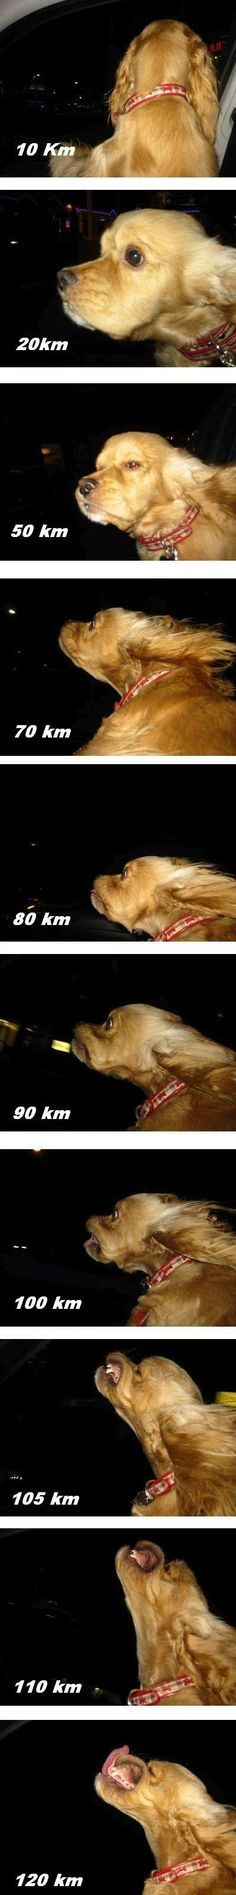 Dog vs. speed.  And then you crash at 130km/h since you are too busy taking those pictures.